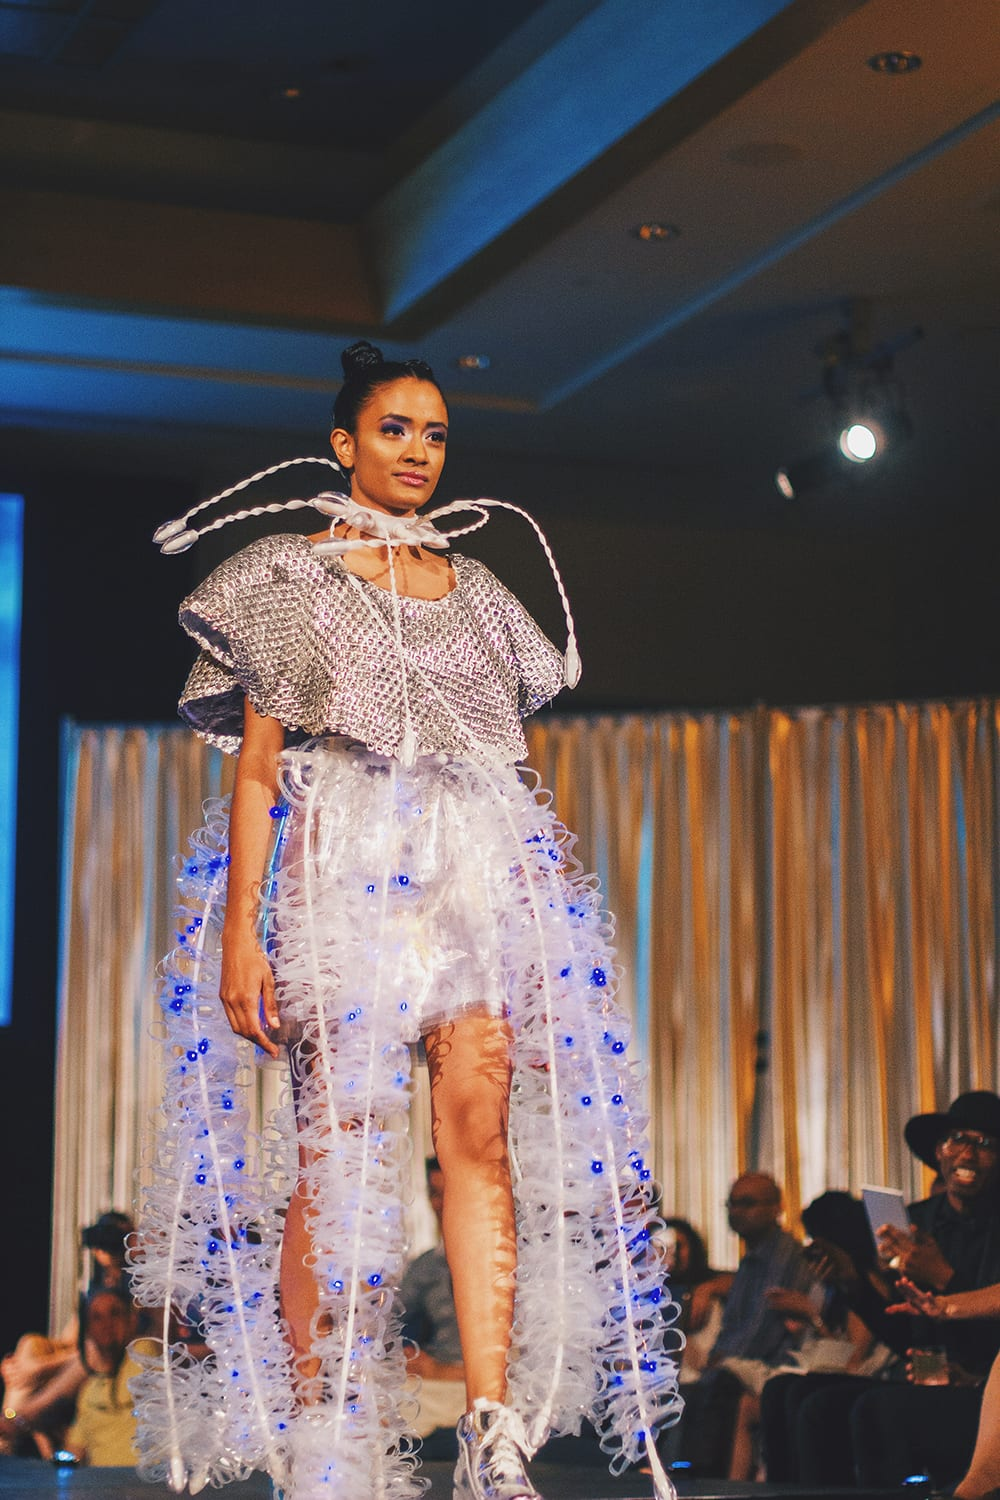 Model wearing recycled fashion at the Ecolution Fashion Show